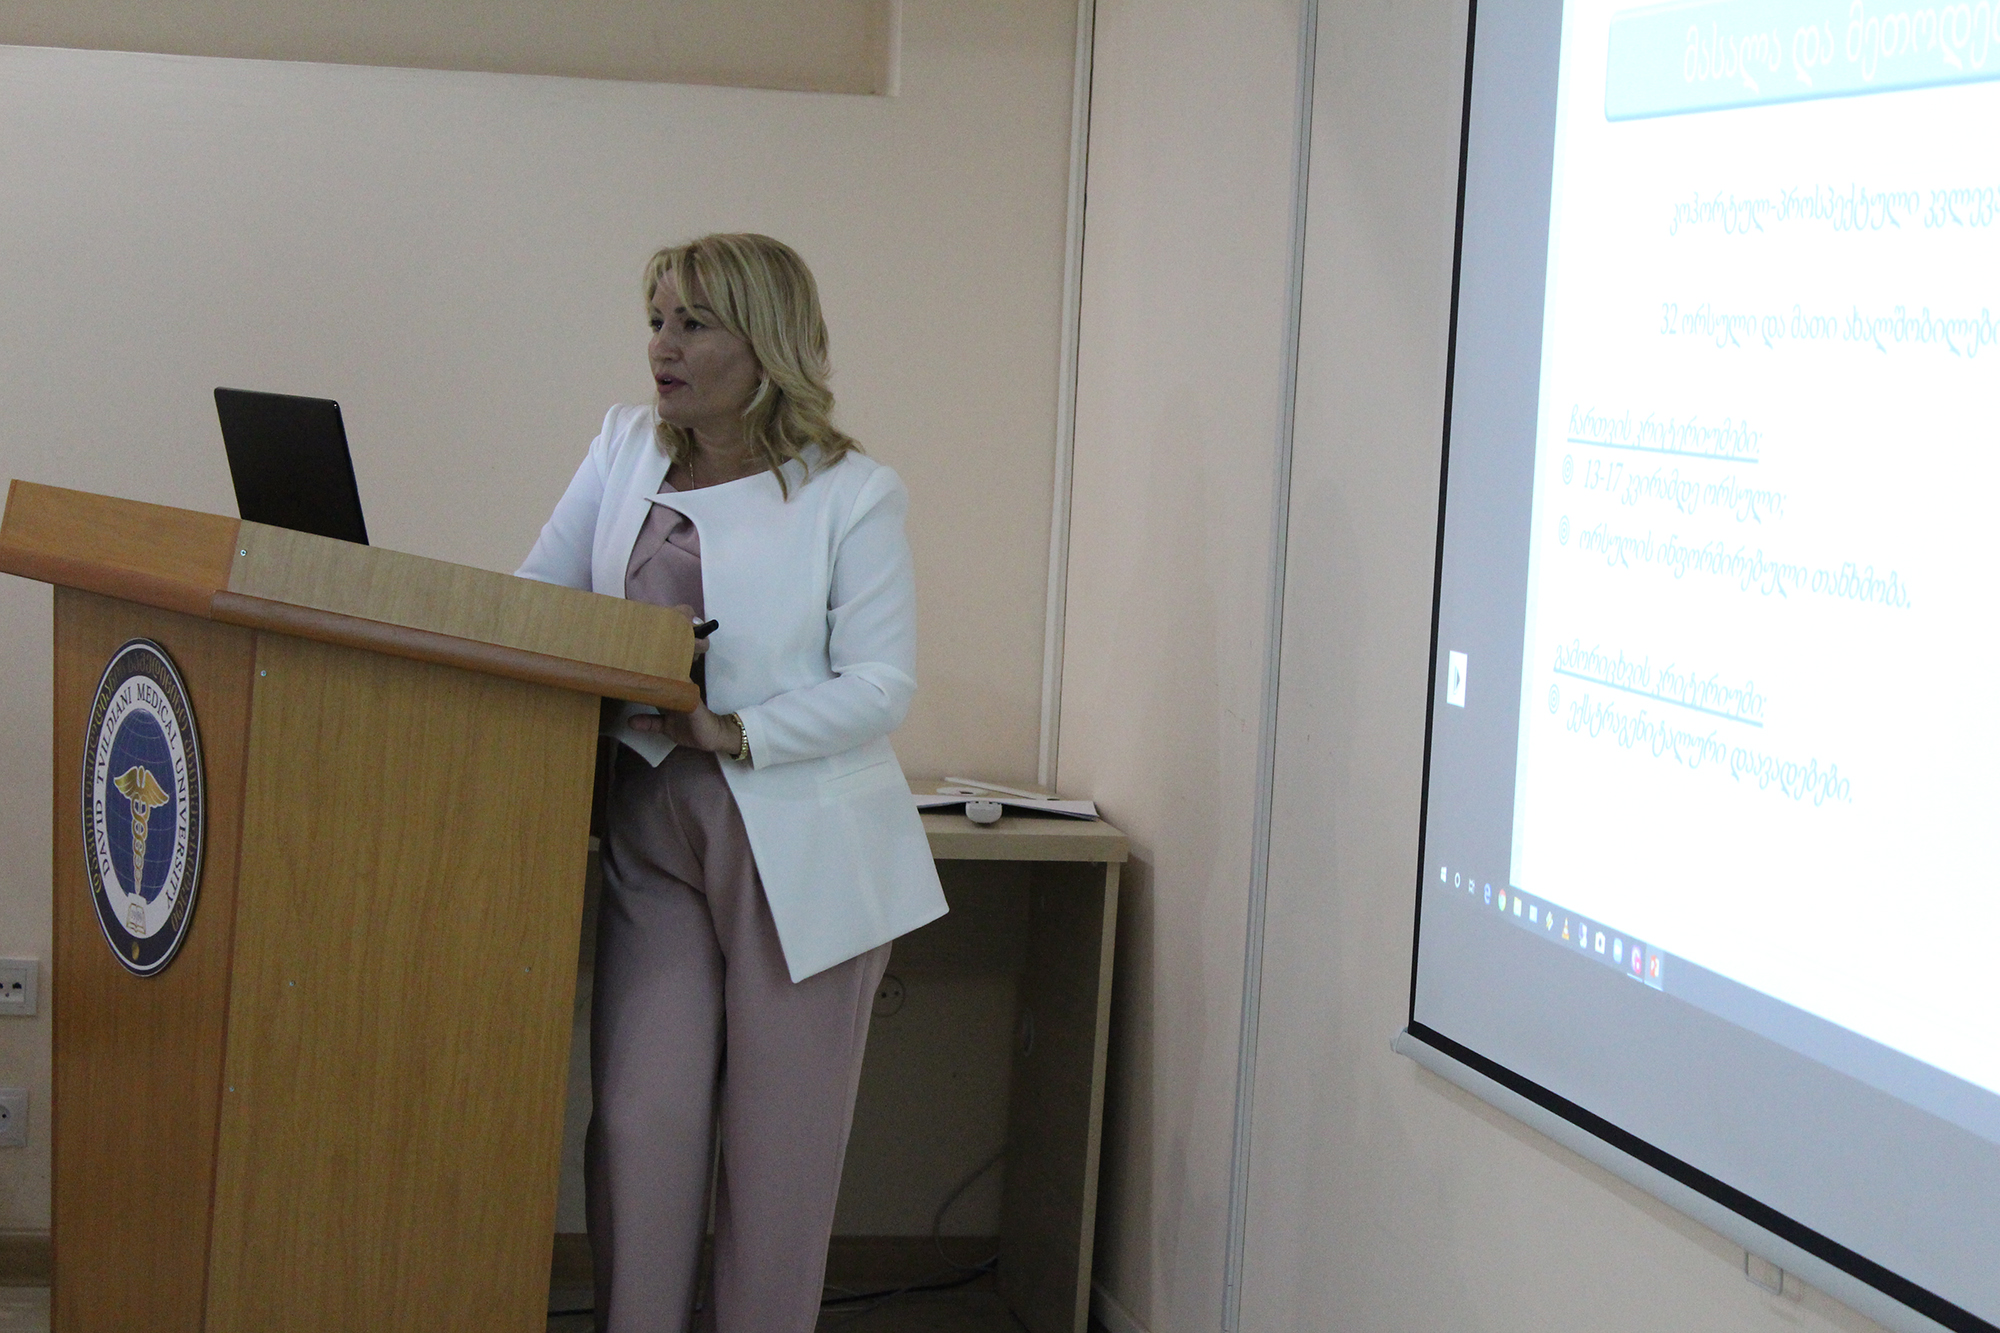 The dissertation defense of PhD candidate Tamar Bakhtadze with title ,,The Impact of Fetal Programming on the Development of Childhood Respiratory Diseases and Asthma ""